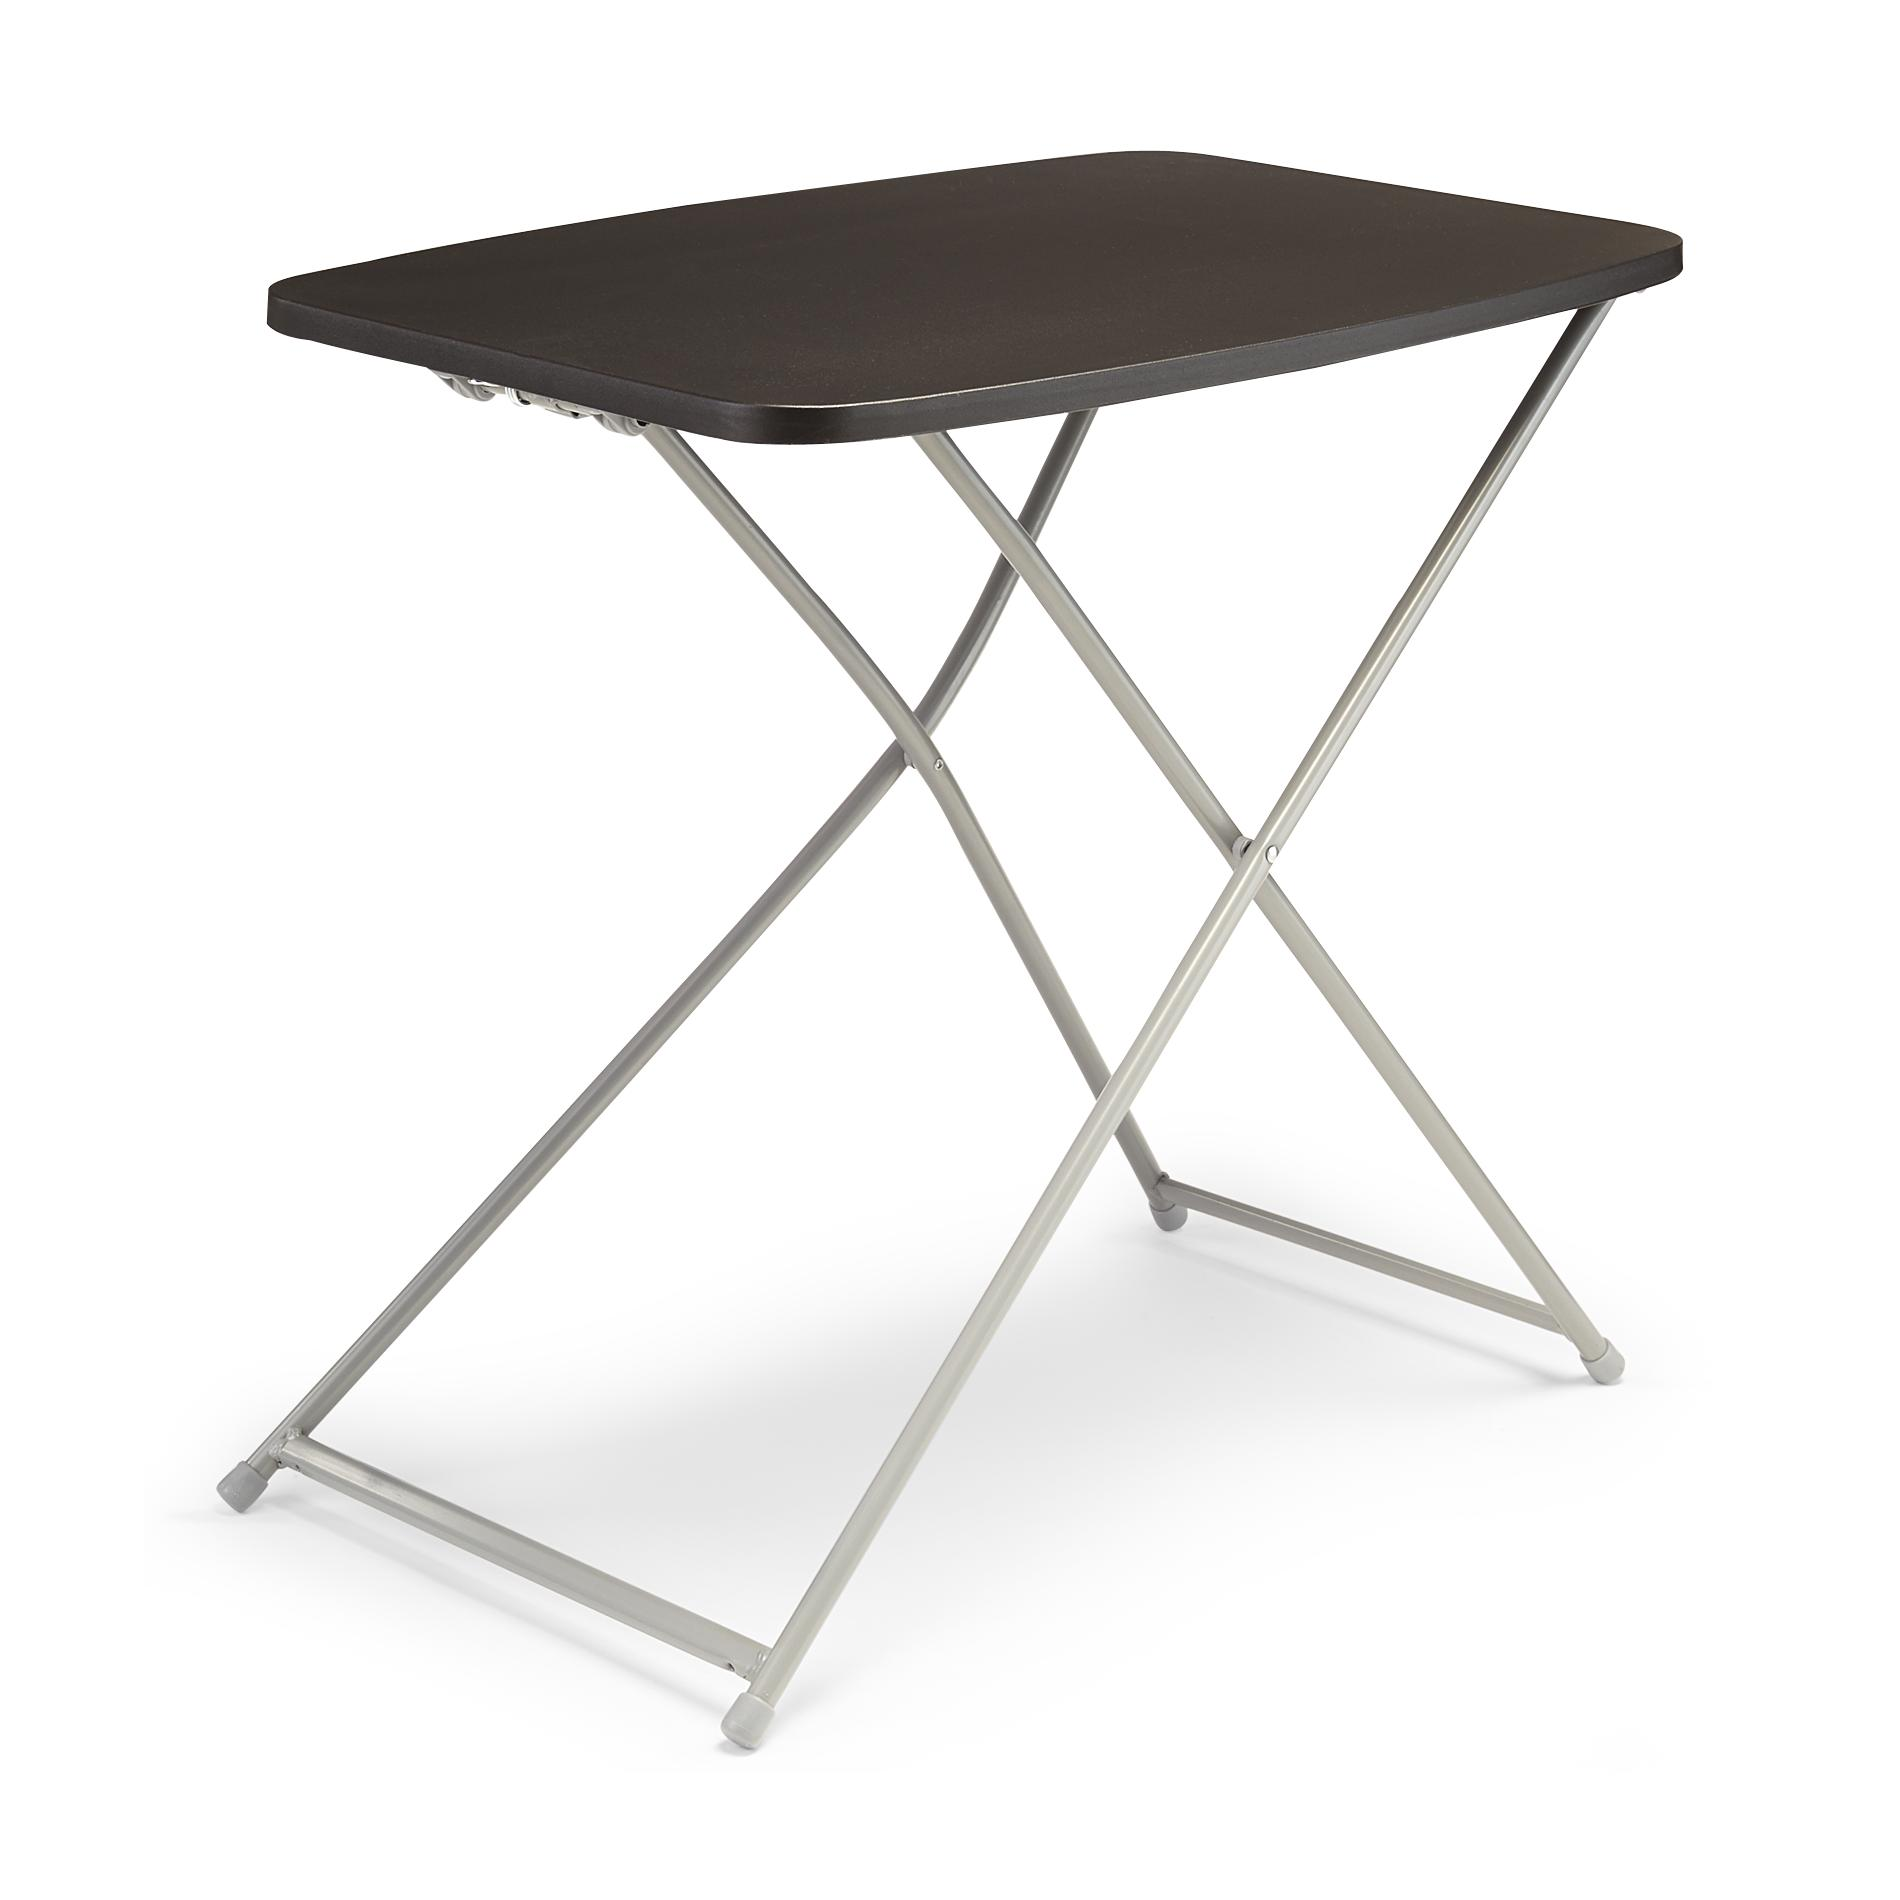 upc cosco home and office products black adjustable prod metal folding accent table product for green chair west elm coat rack glass pedestal chairs drop leaf with storage goods